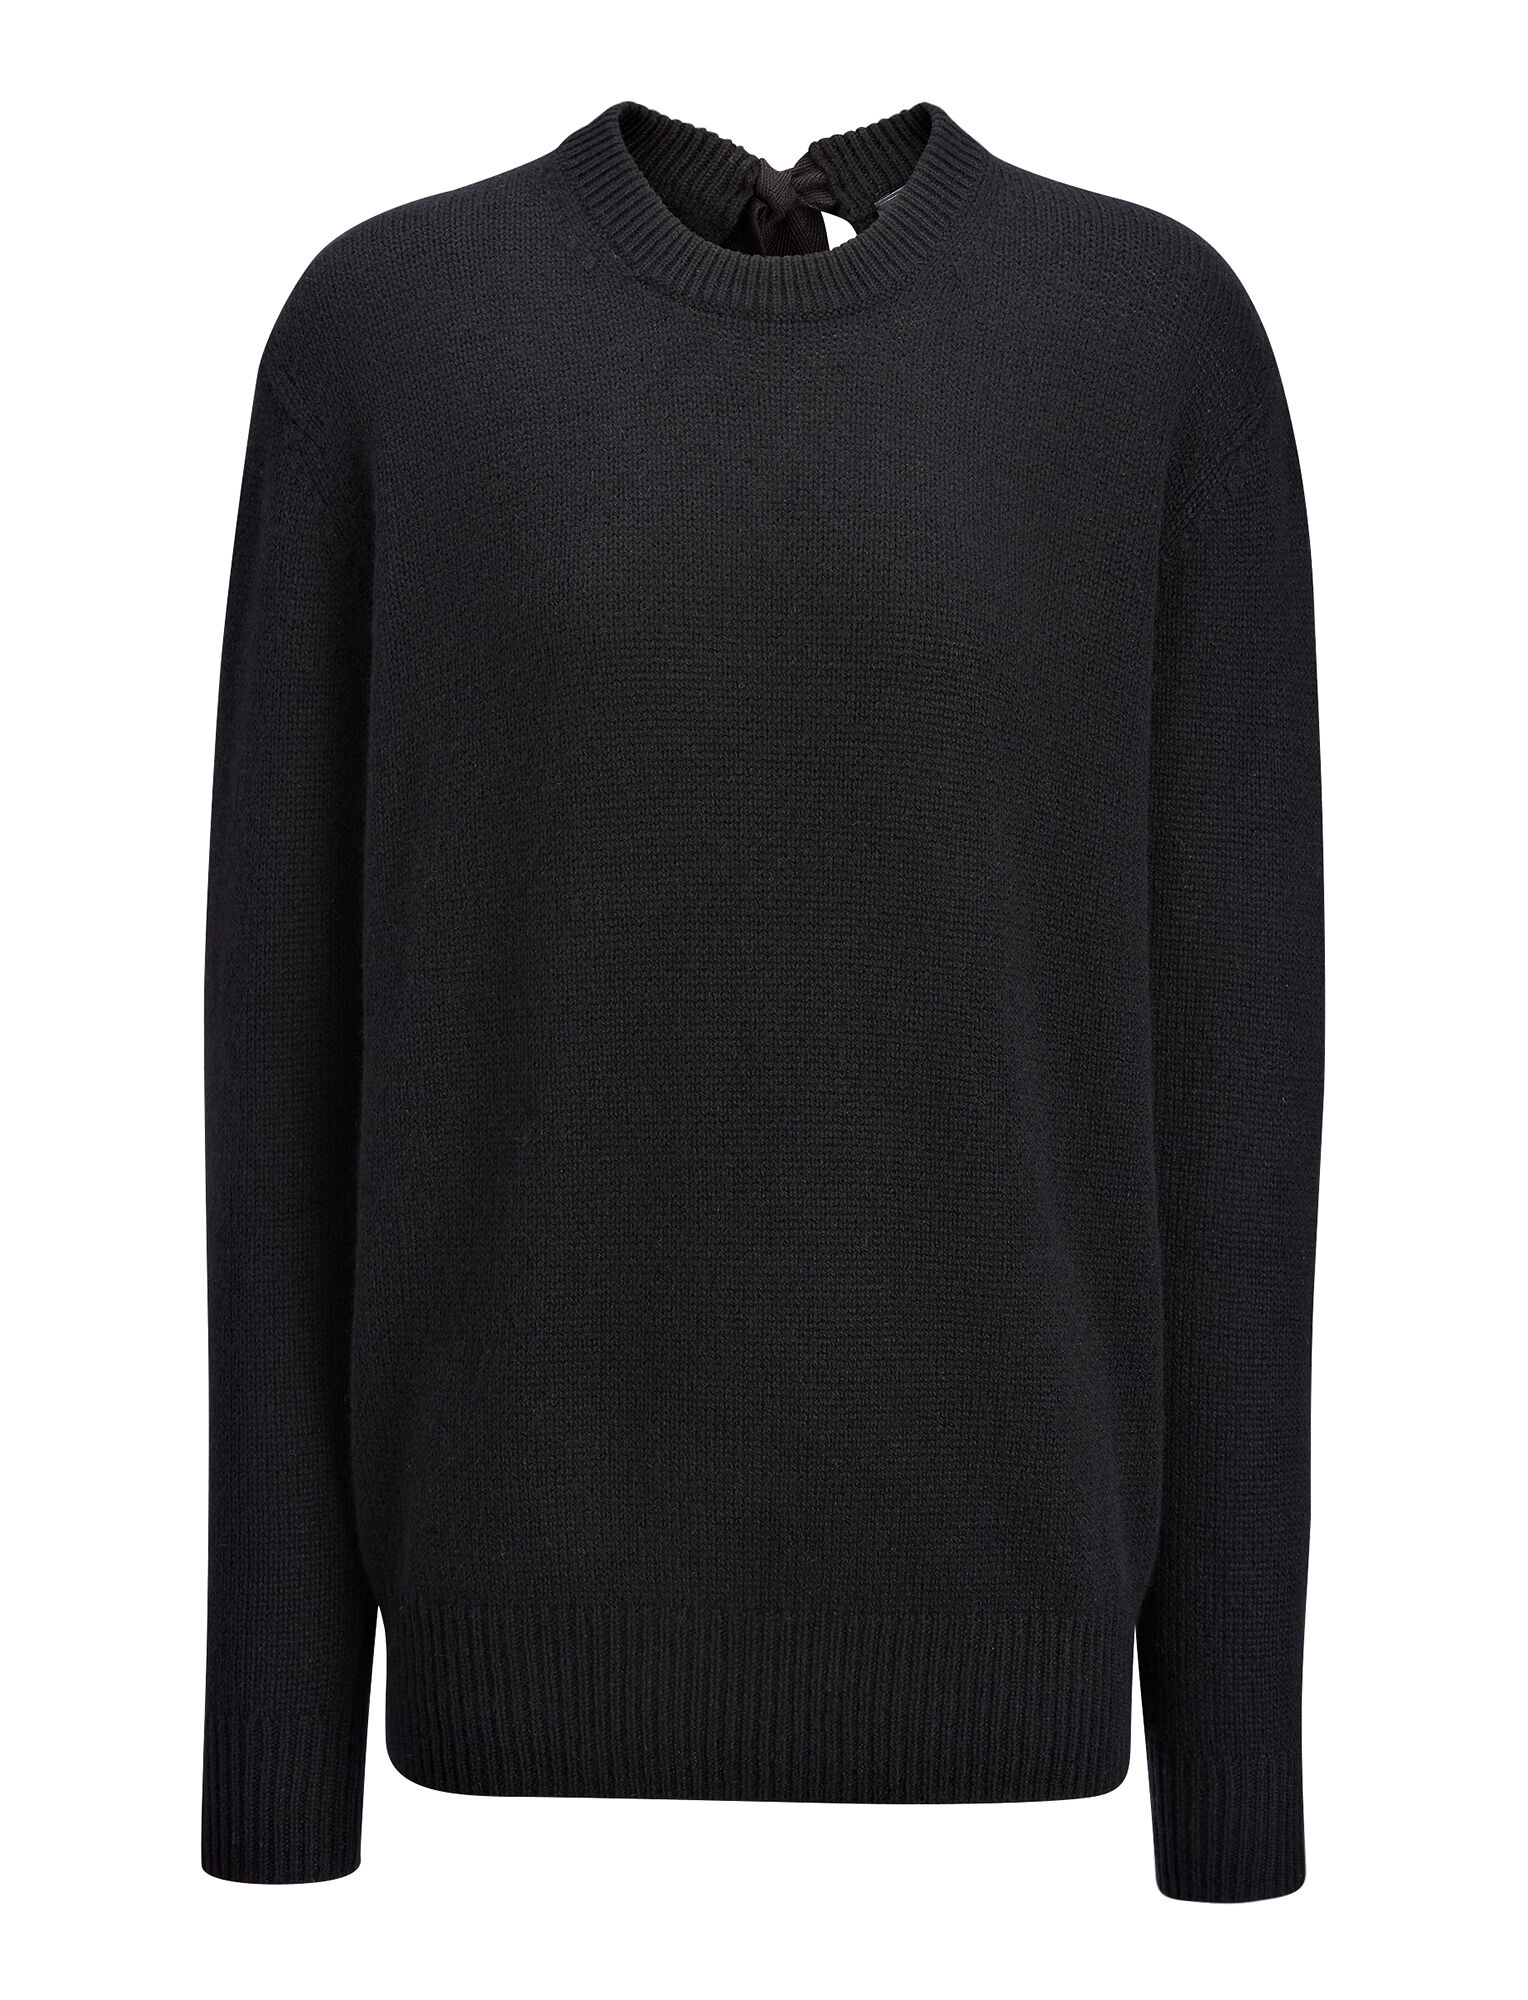 Joseph, Open Cashmere Top, in BLACK